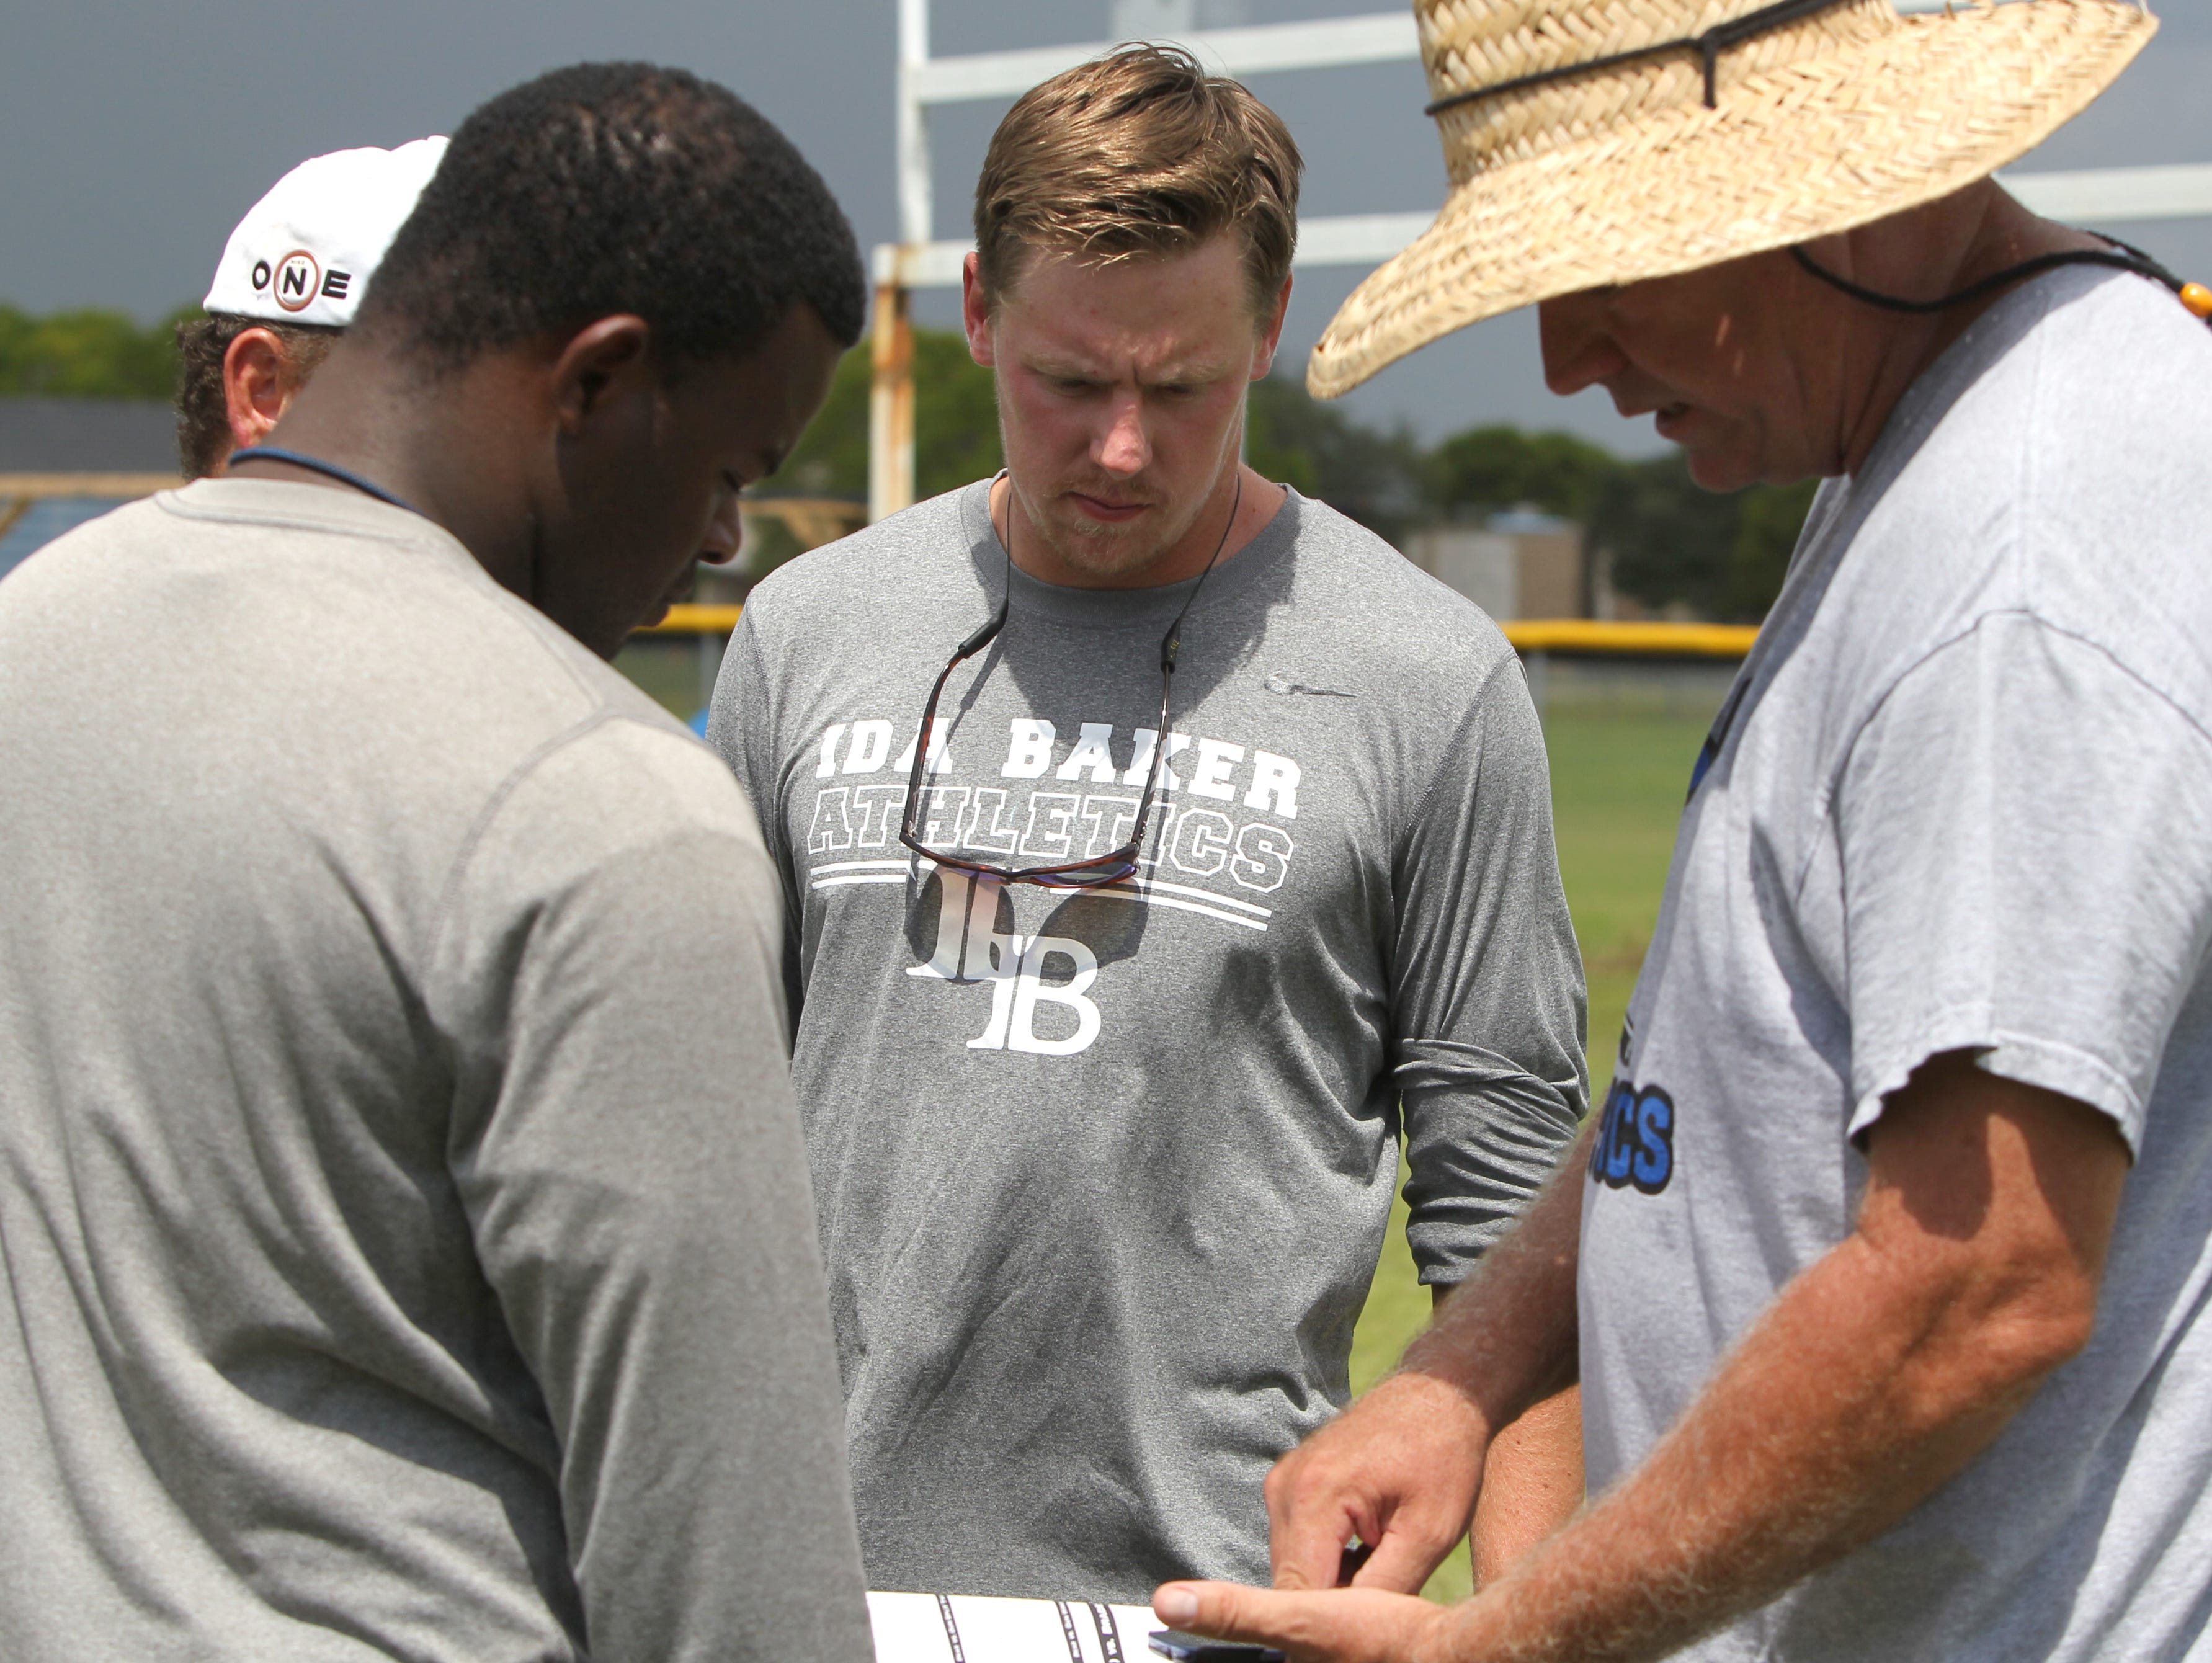 Cullen O'Brien, center, plans afternoon practice with other coaches during practice at Ida S. Baker High School in Cape Coral Wednesday.